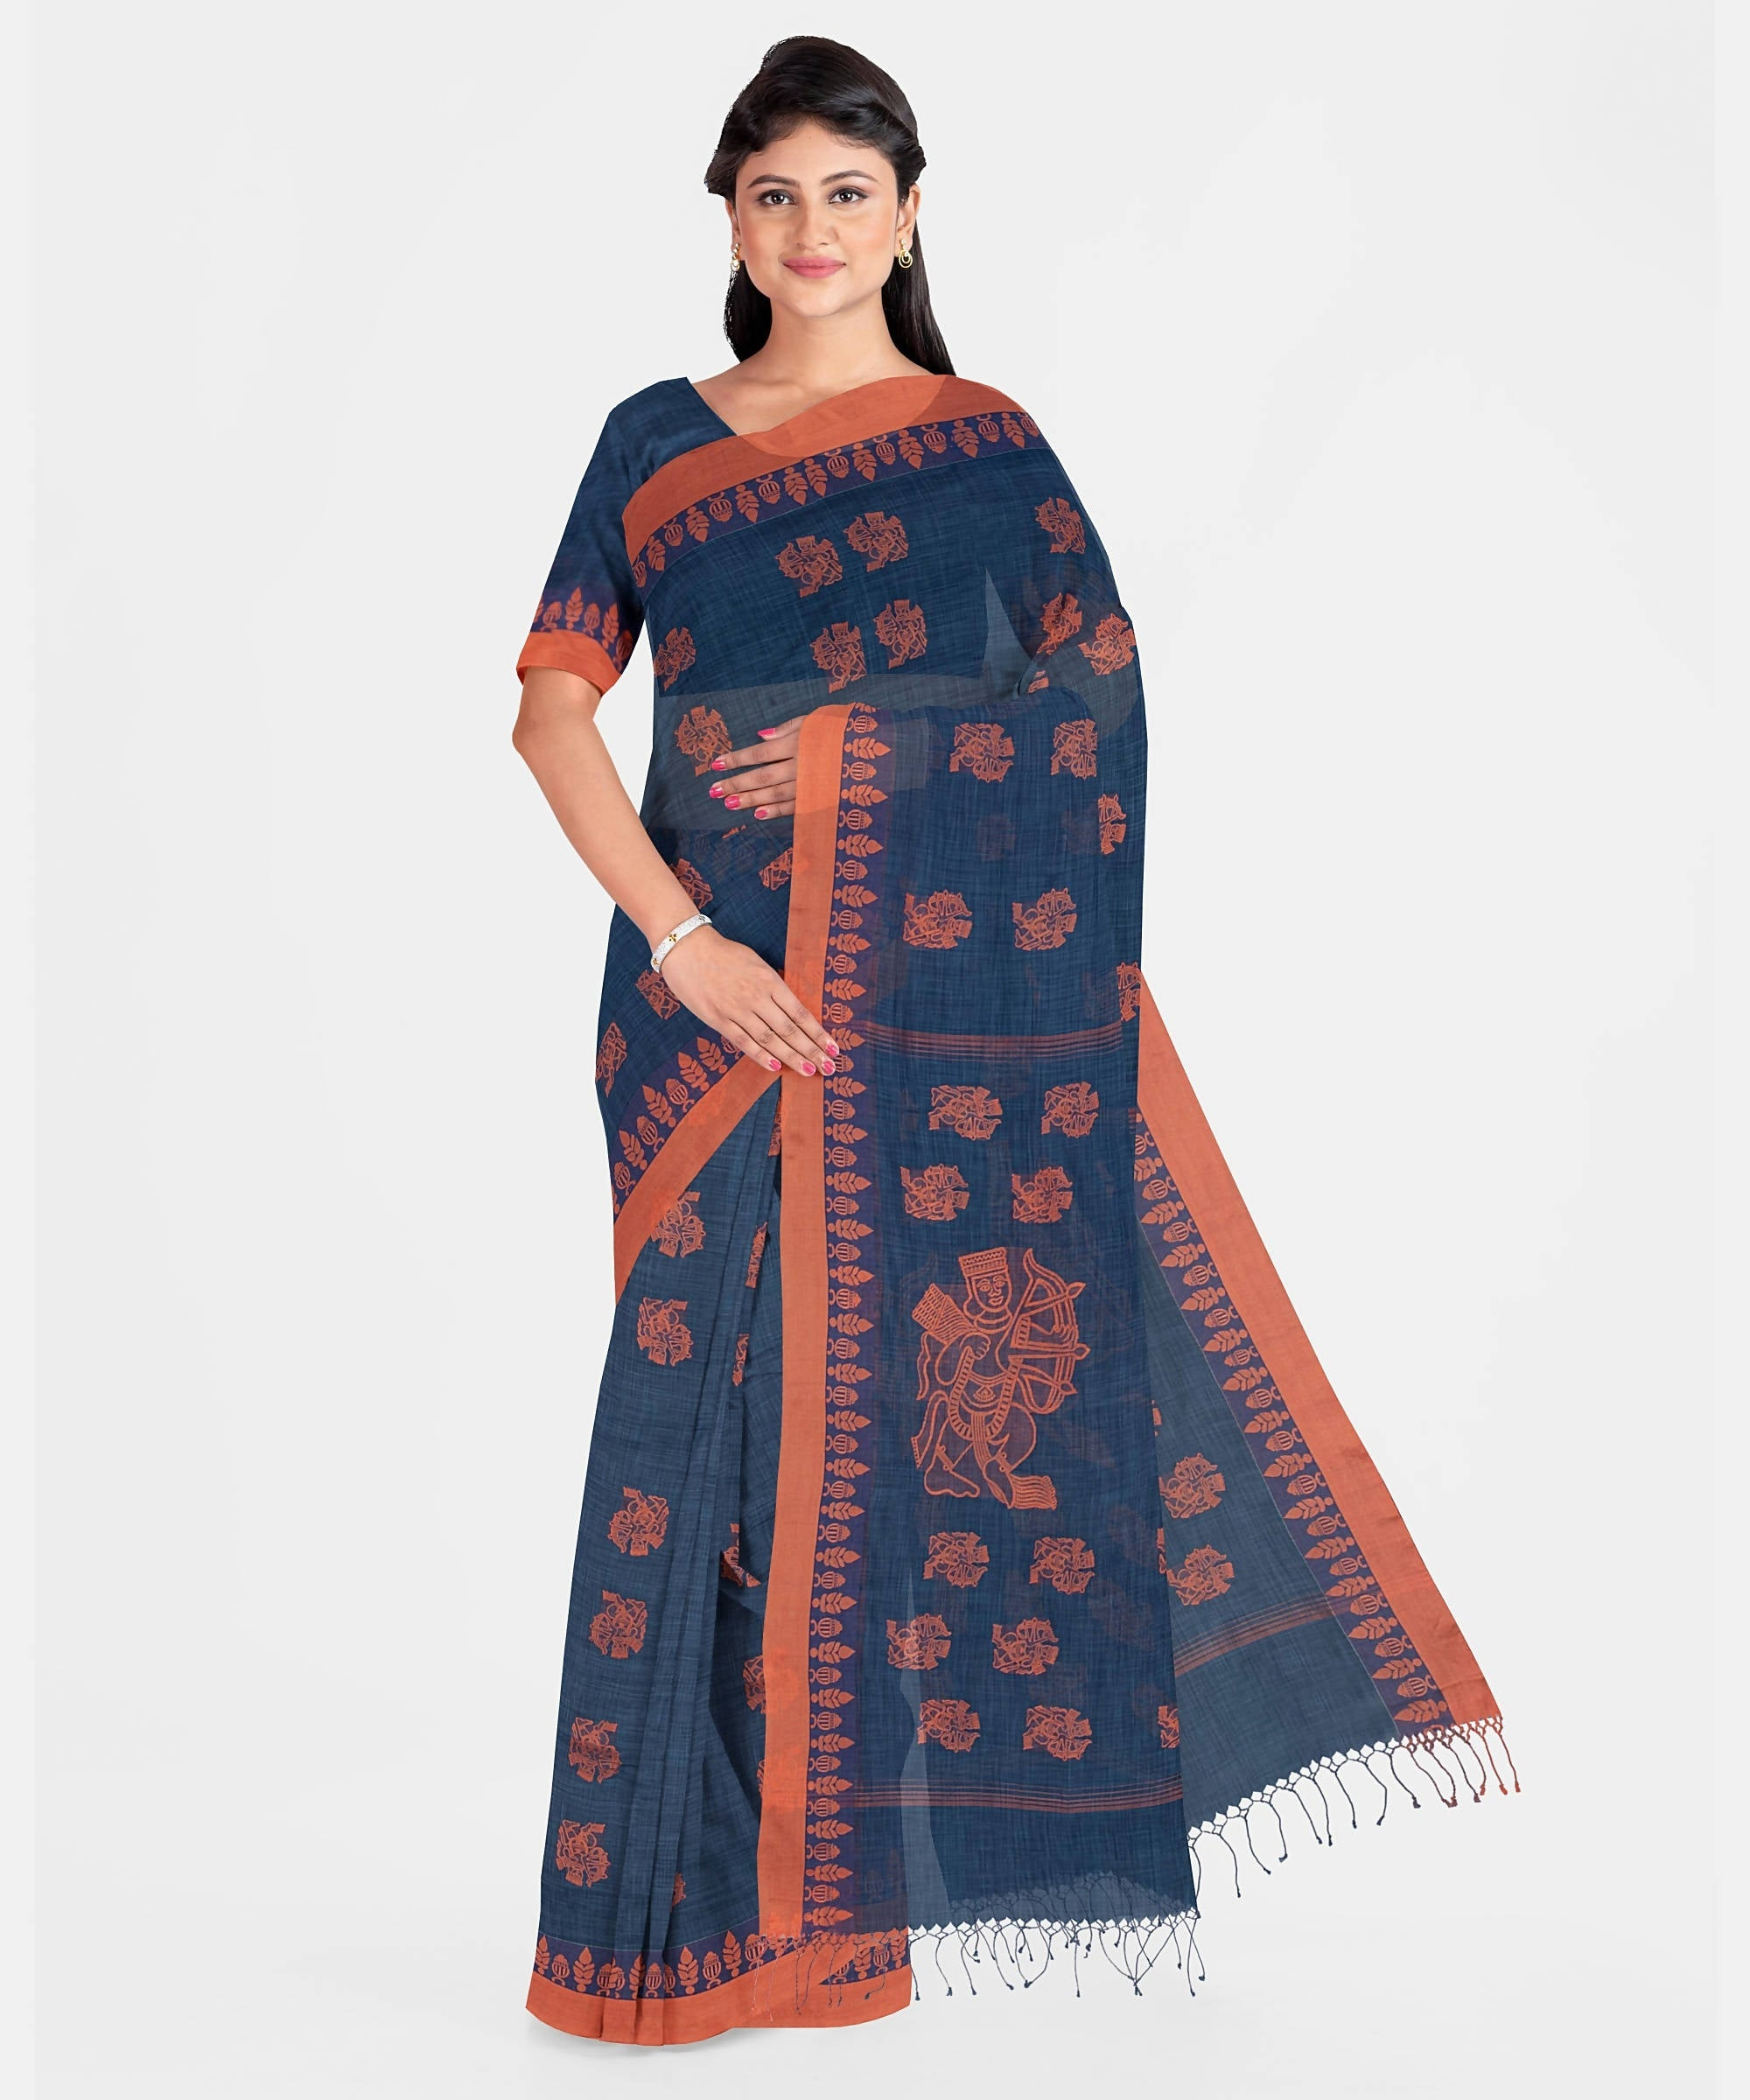 Biswa Bangla Handwoven Muslin Saree - Blue and Rust